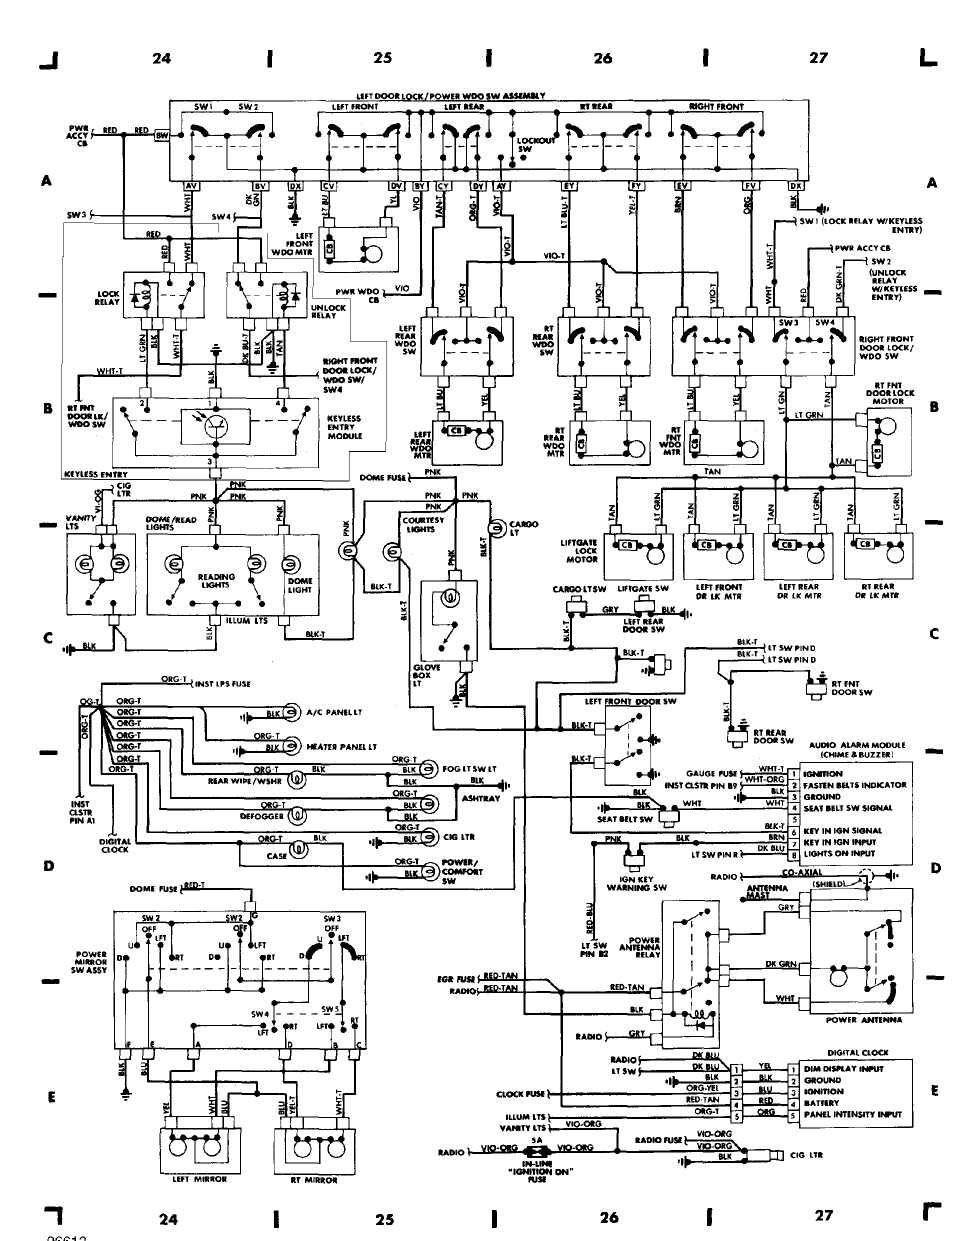 wiring_diagrams_html_61f5e0ad wiring diagrams 1984 1991 jeep cherokee (xj) jeep jeep cherokee xj engine wiring harness at reclaimingppi.co